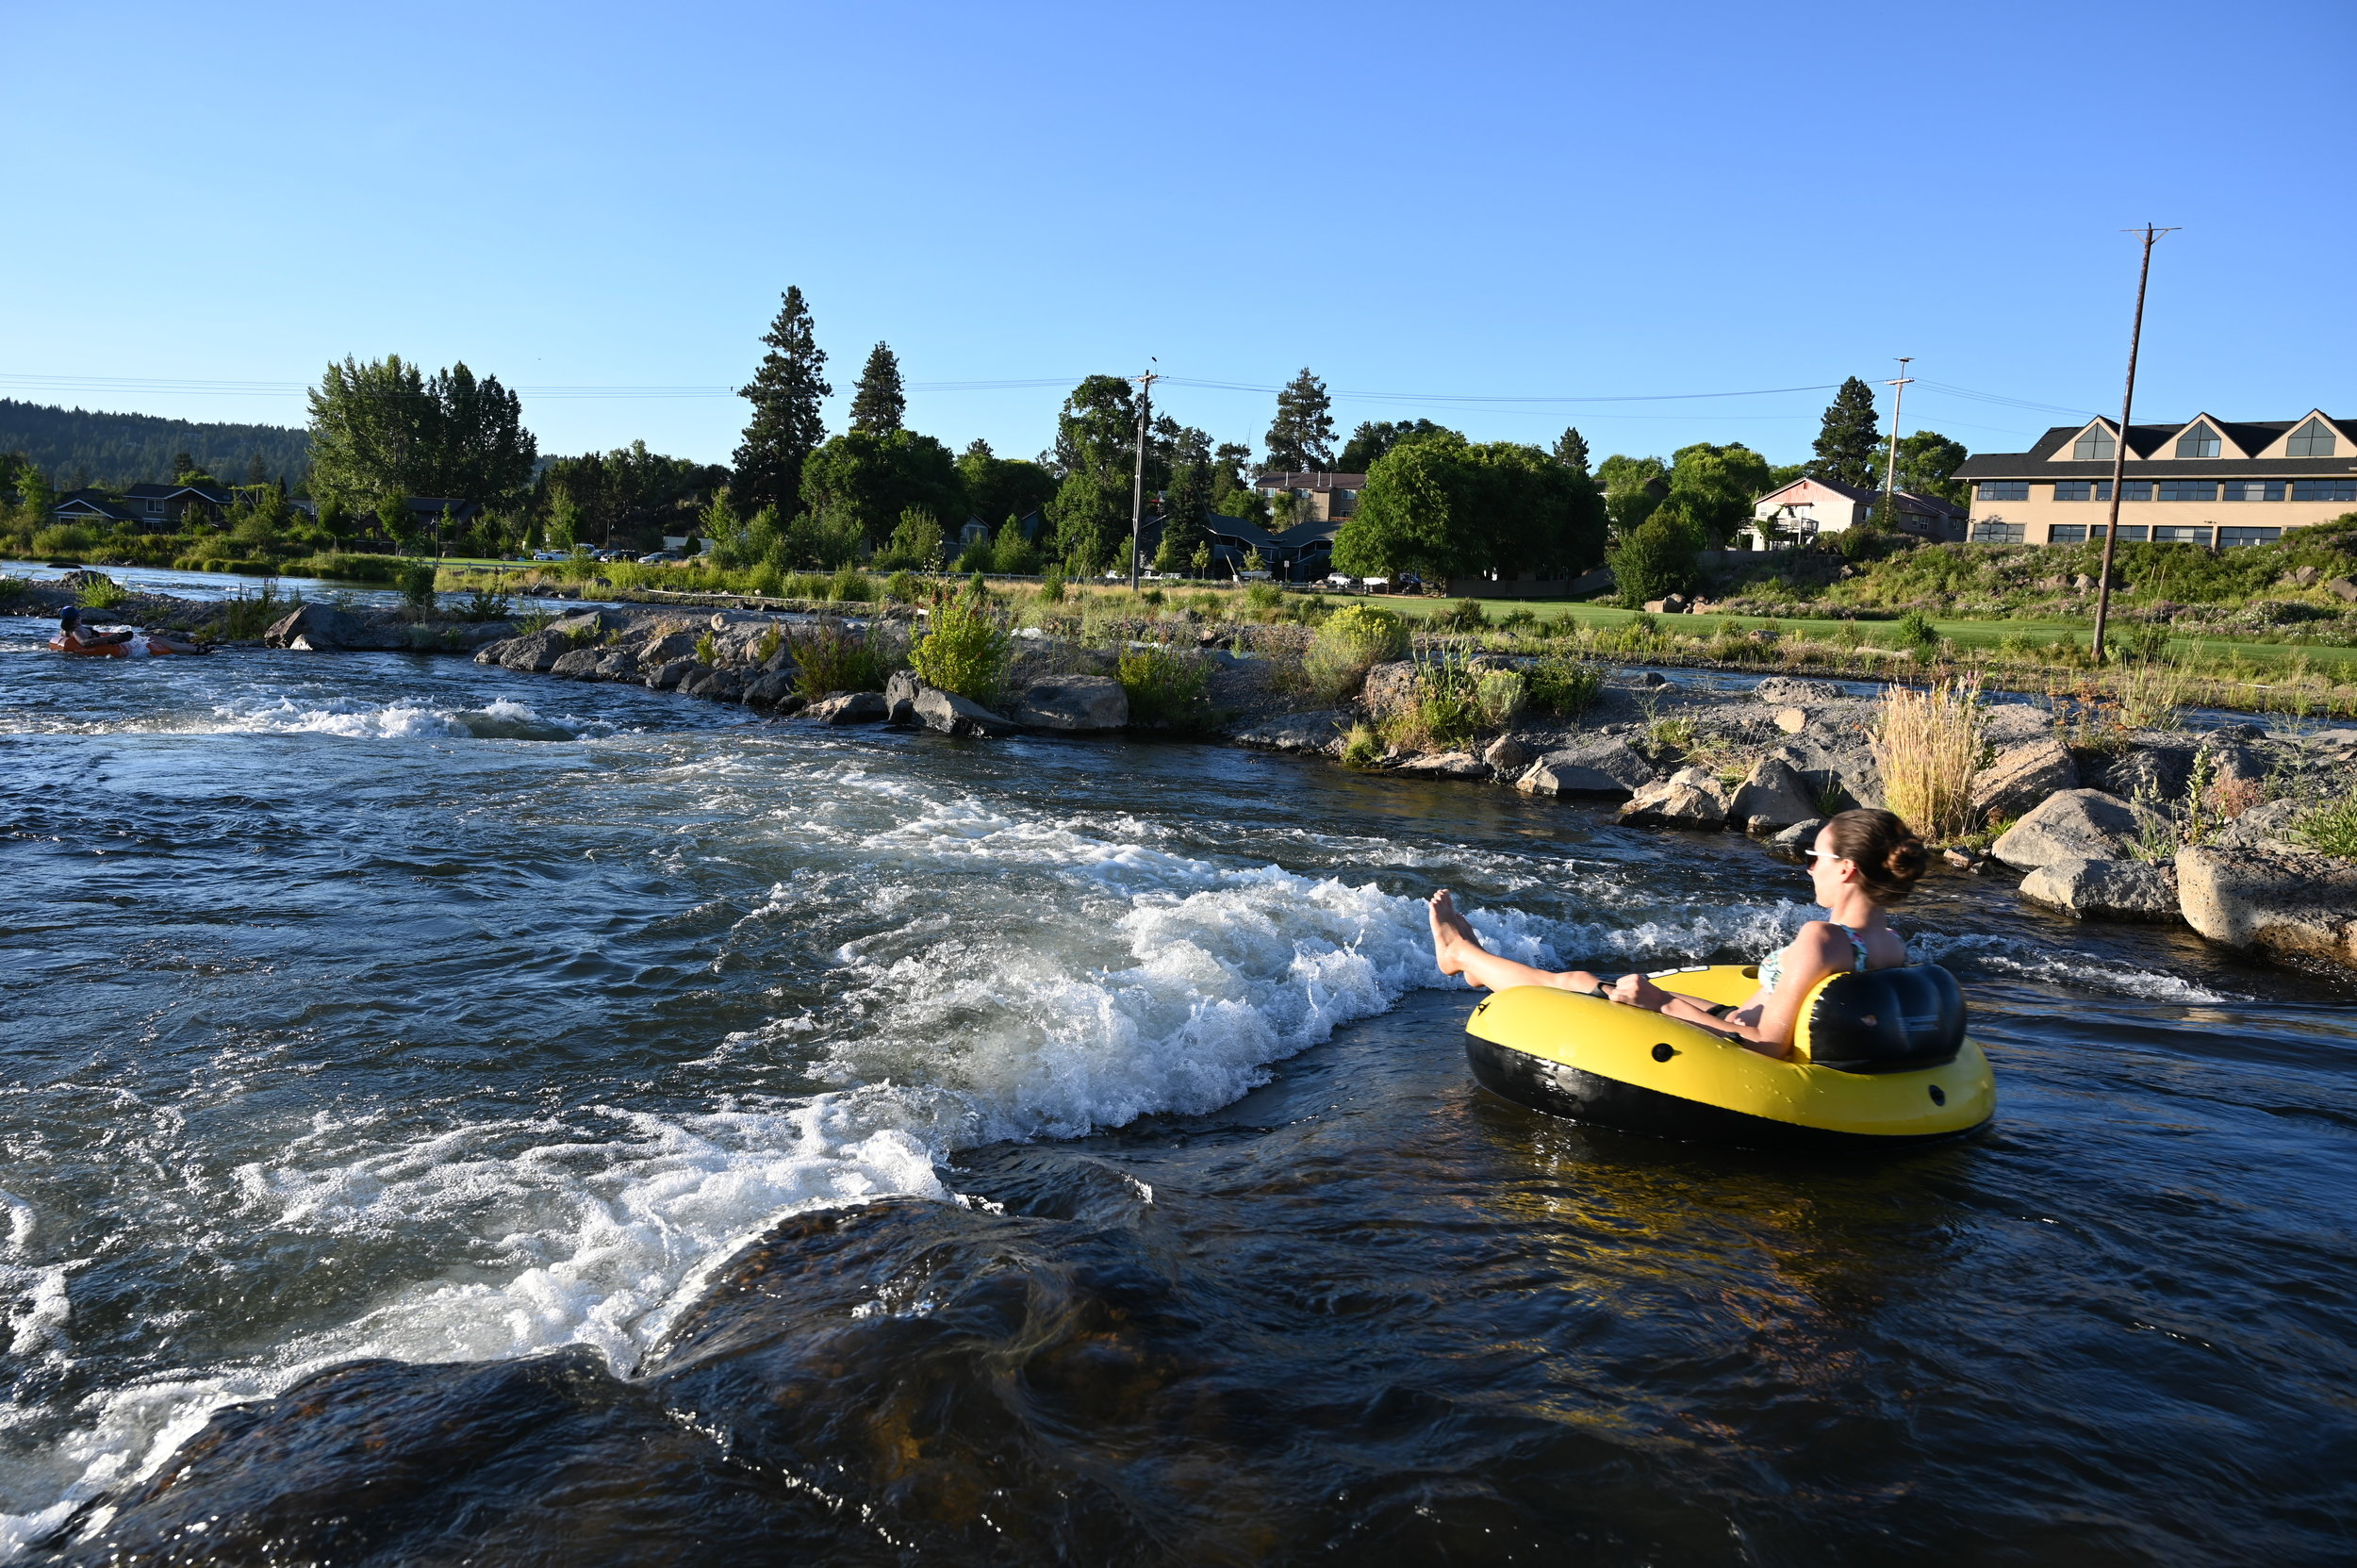 tubing person floats through whitewater park on clear day